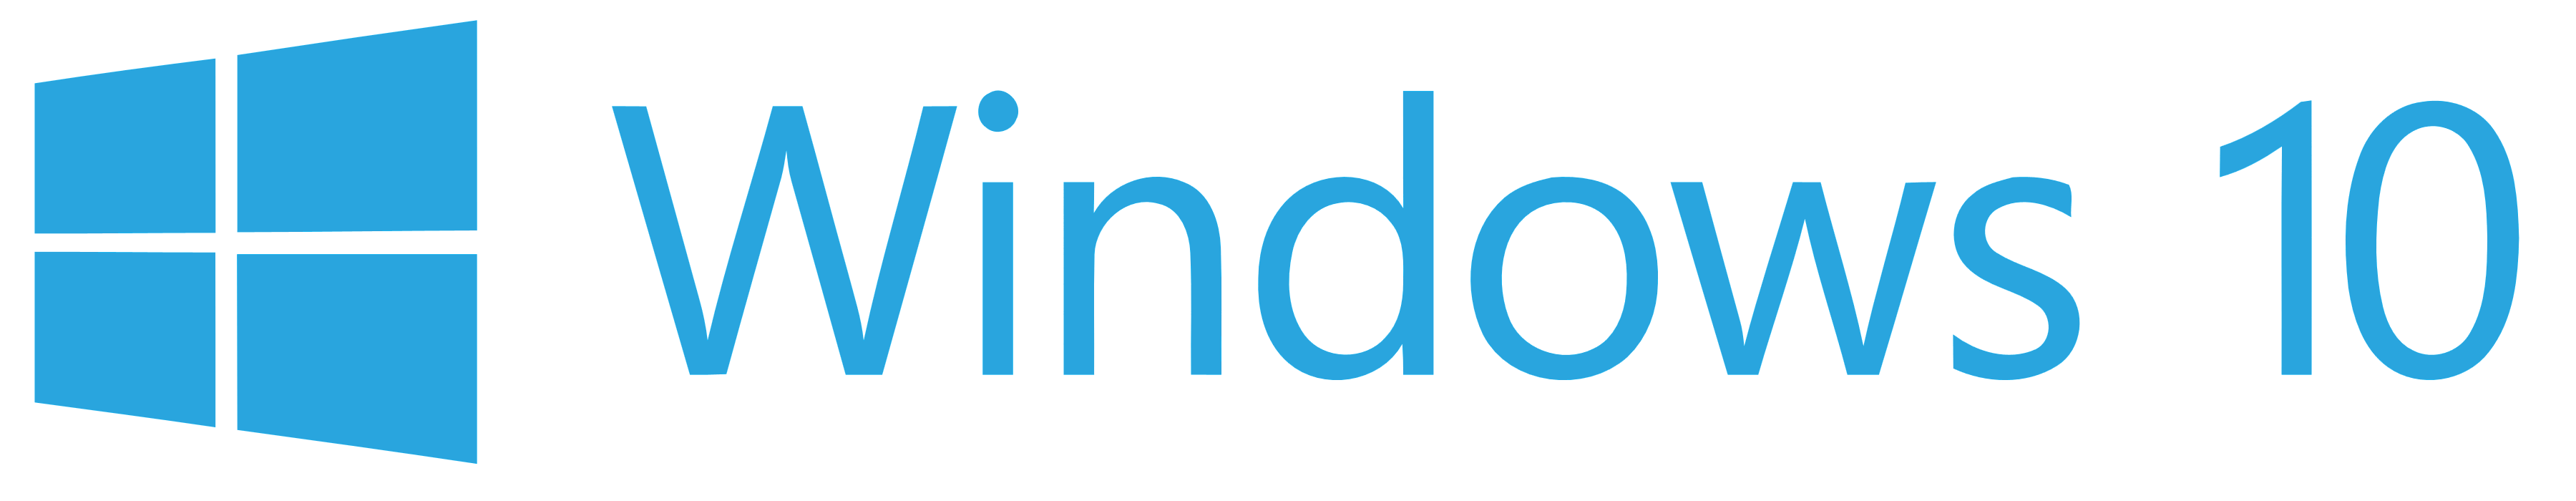 Windows 10 pro logo png. Microsoft surface featured brand